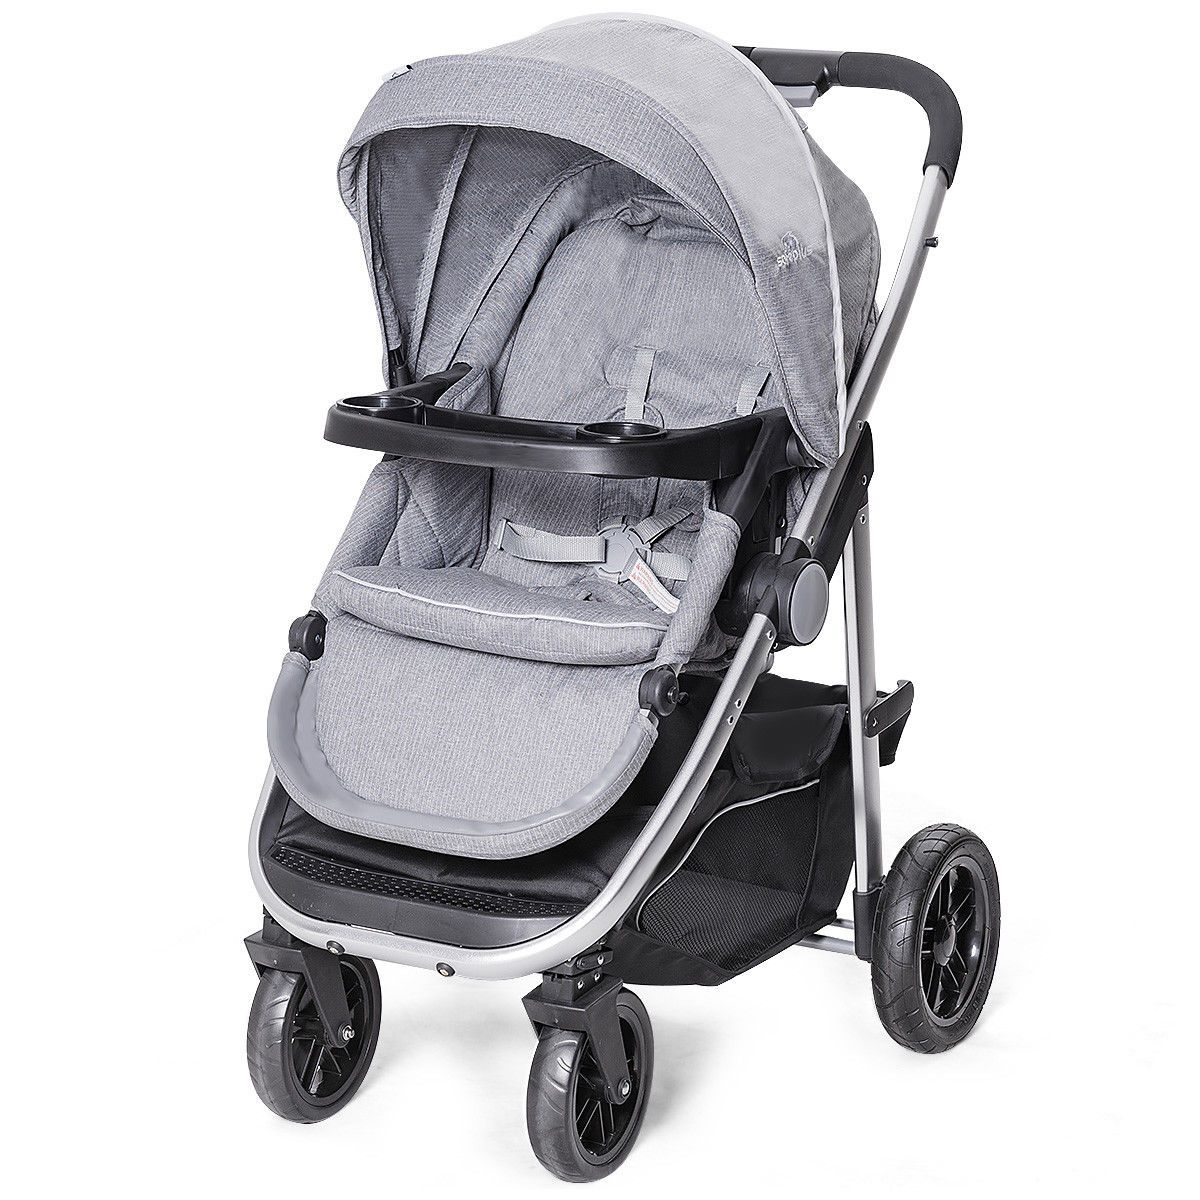 39 reference of stroller baby lightweight in 2020